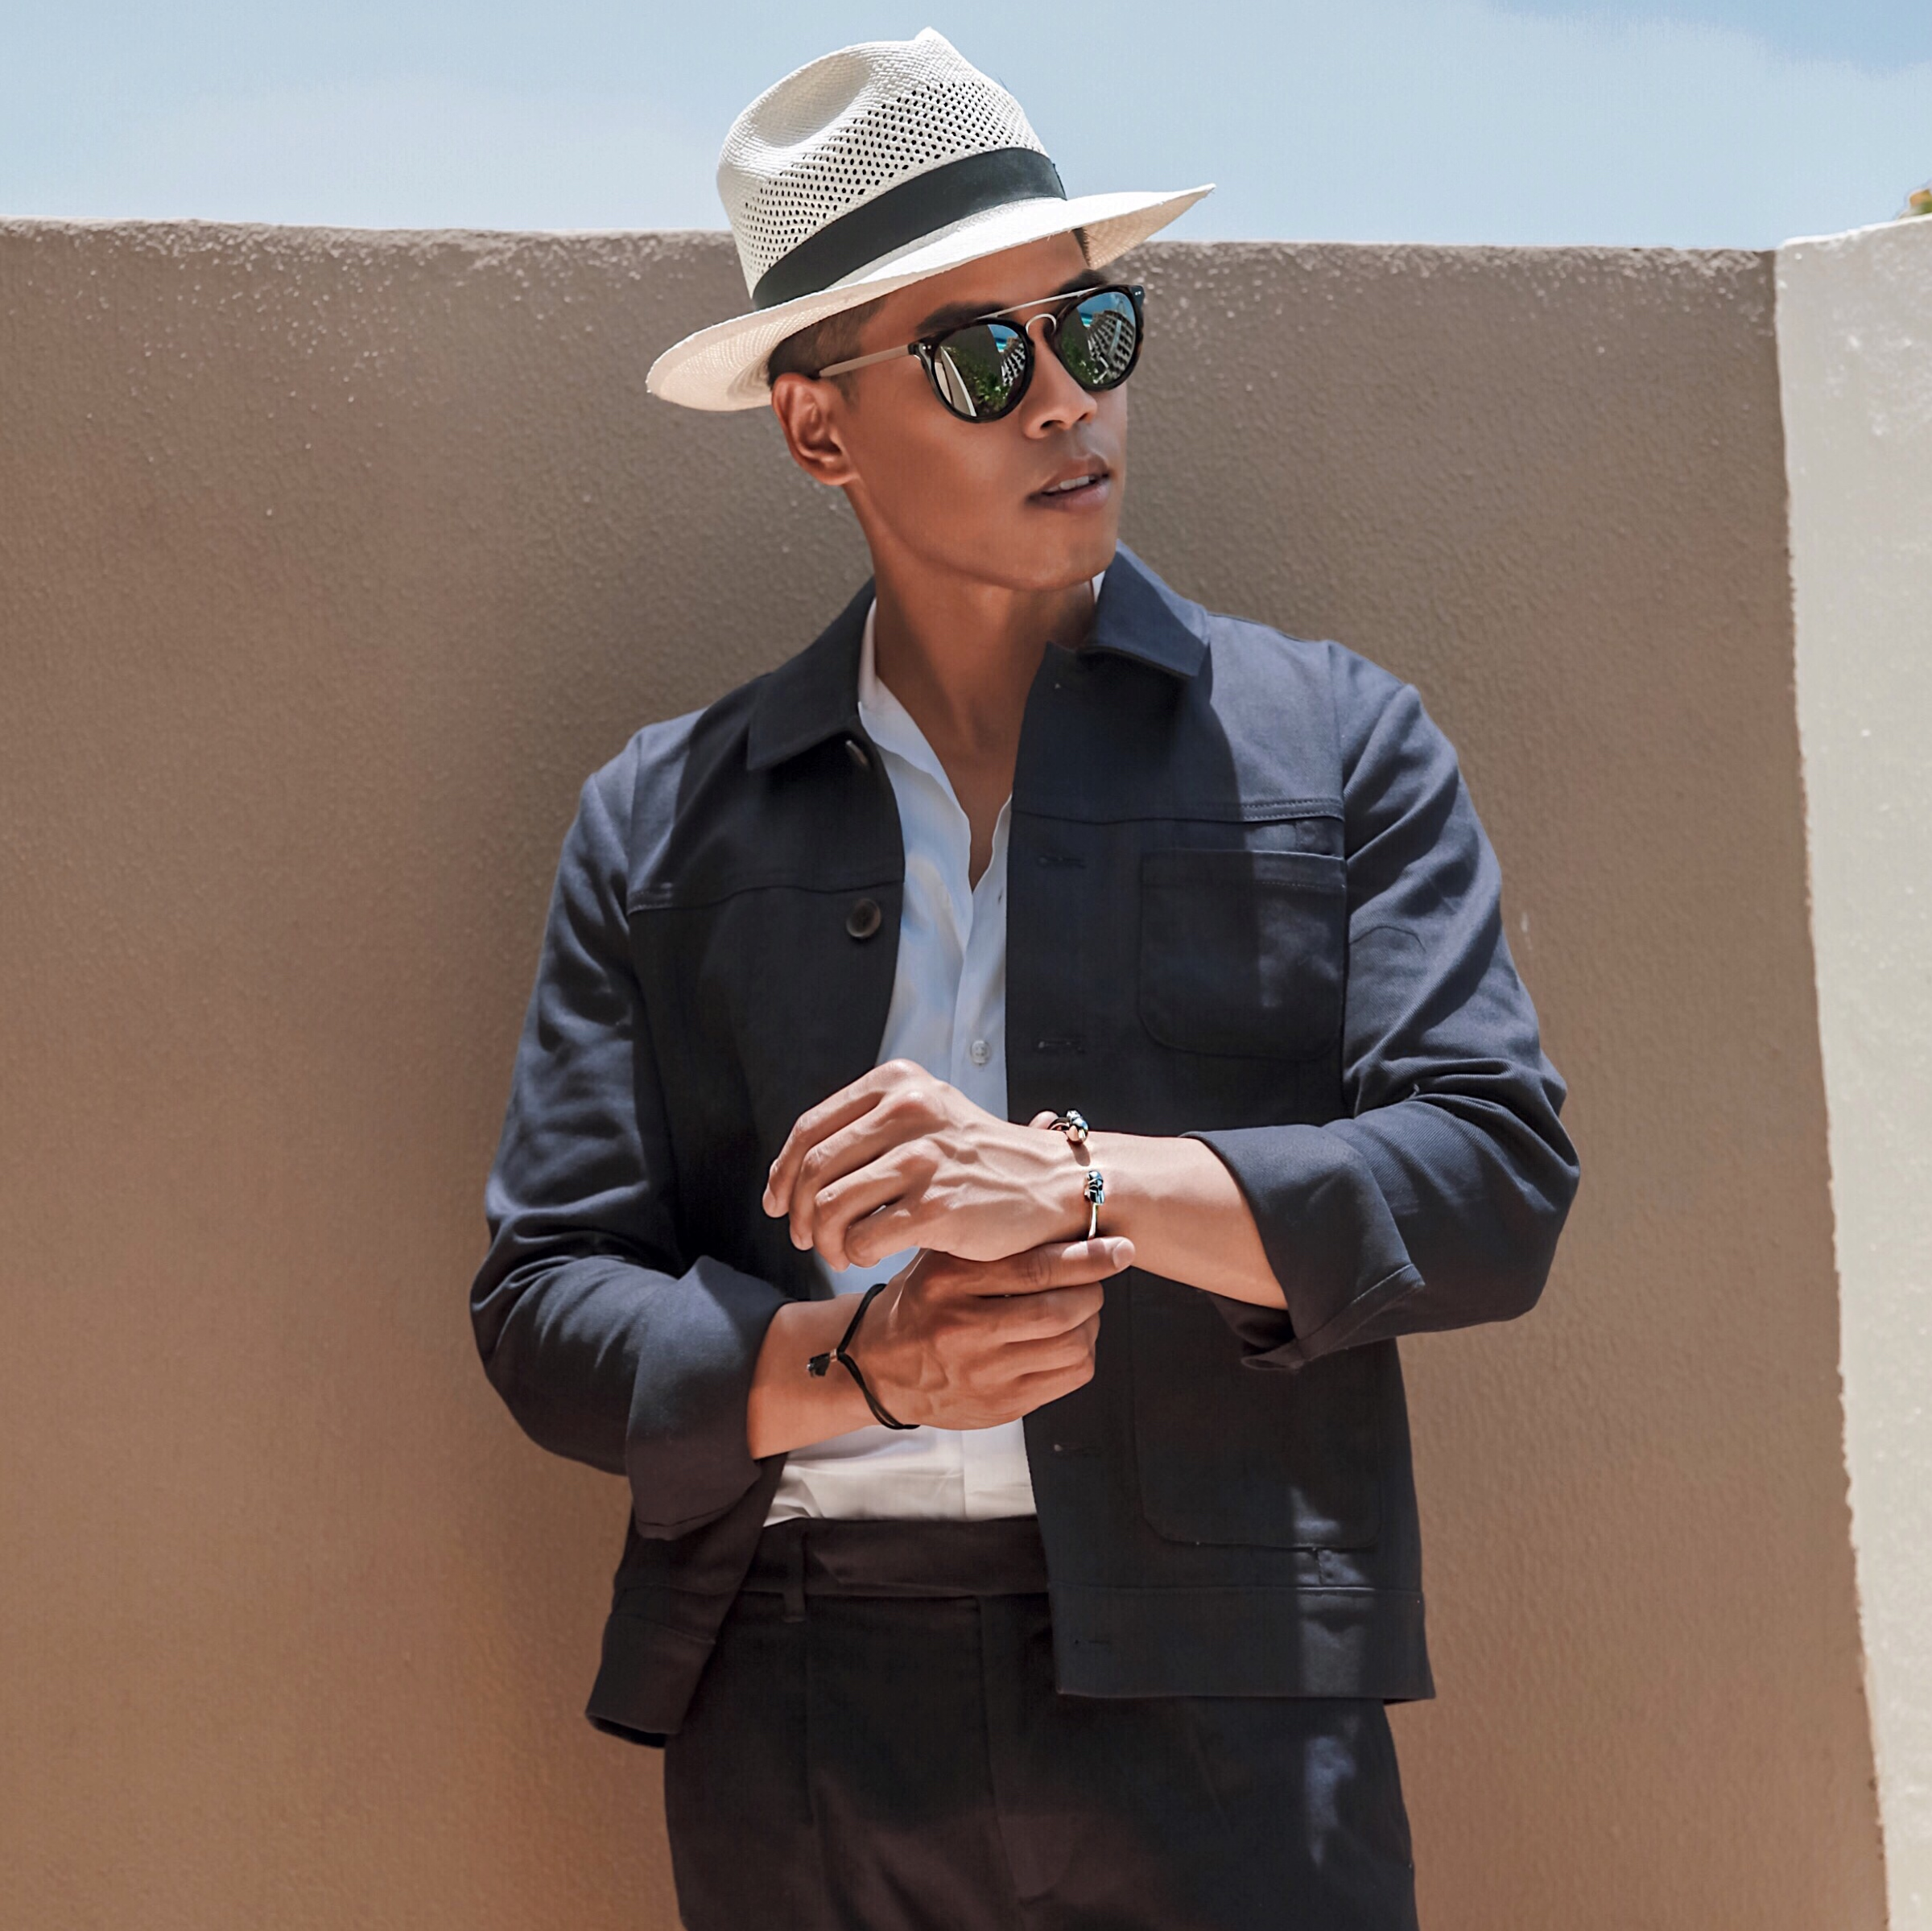 men's summer vacation outfit